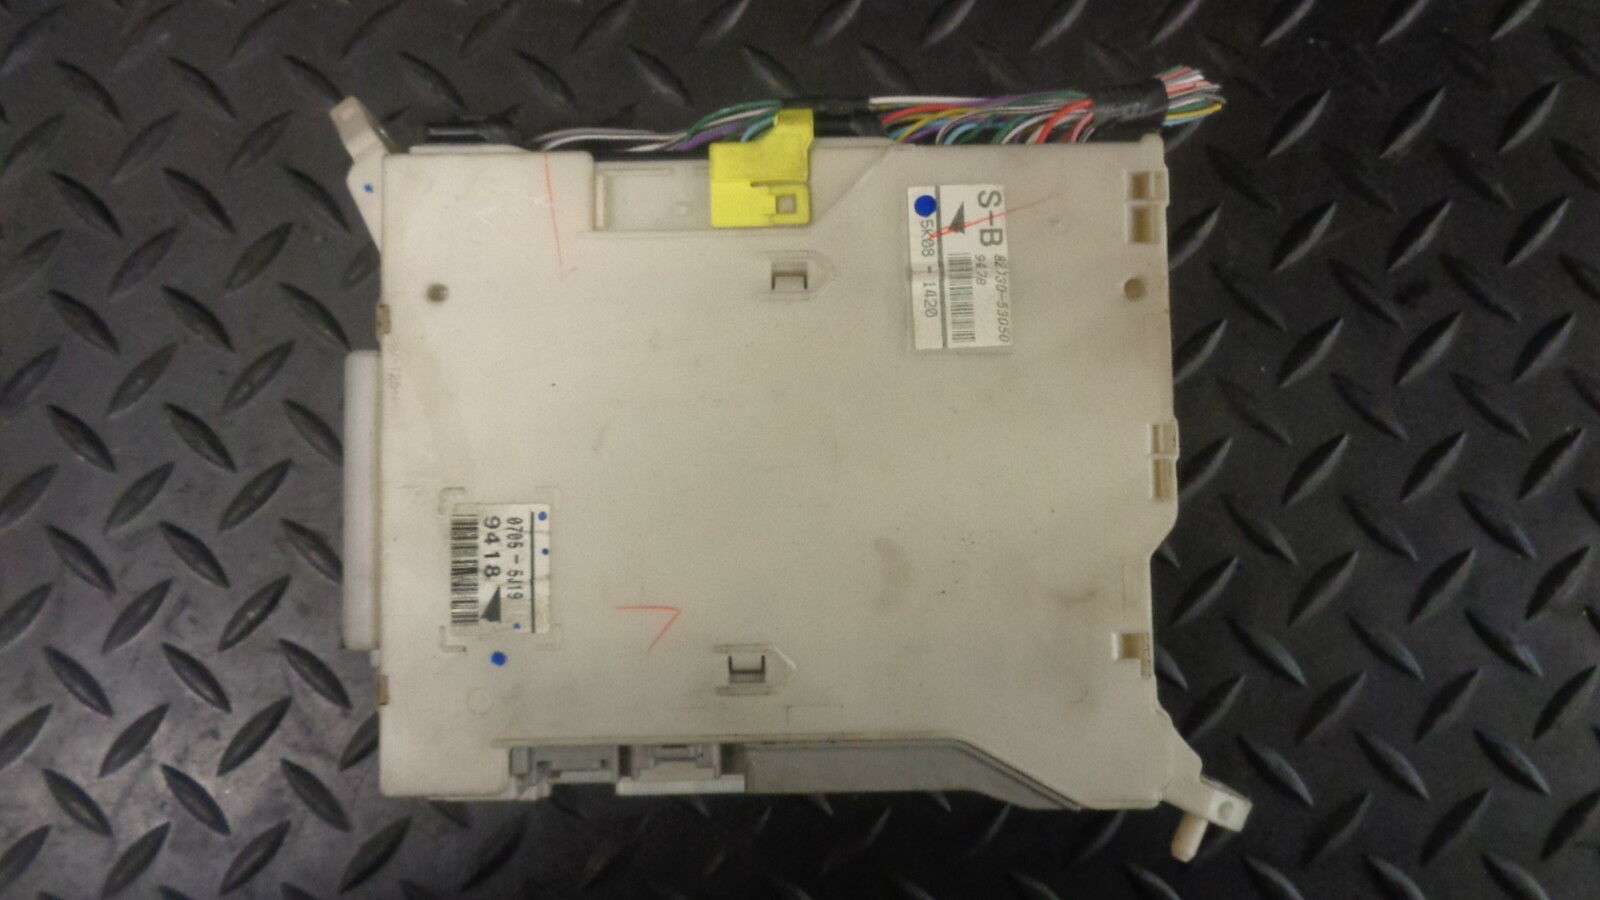 2006 Lexus Is 220D 2.2 Diesel Interior Fuse Box 82730-53050 1 of 2Only 1  available 2006 Lexus Is 220D ...